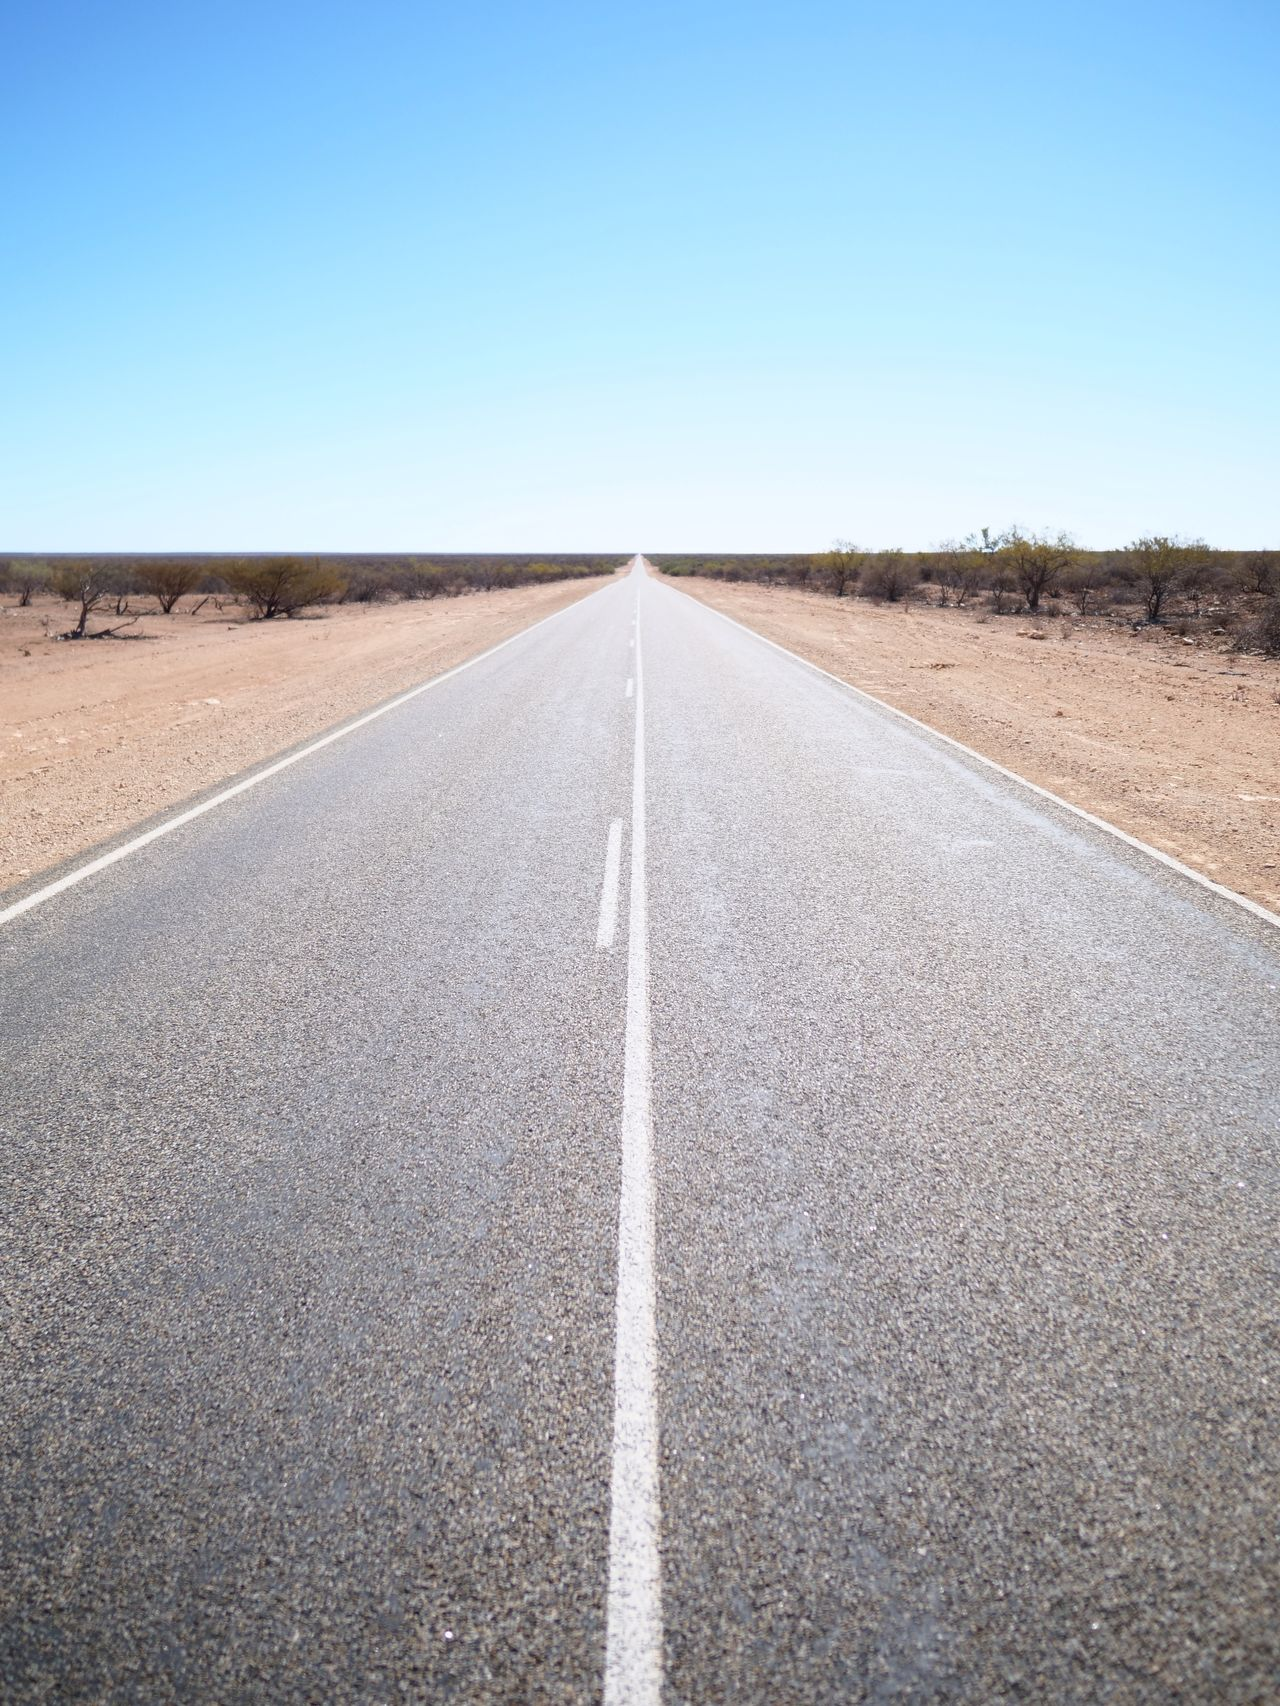 Empty road passing through landscape against clear sky